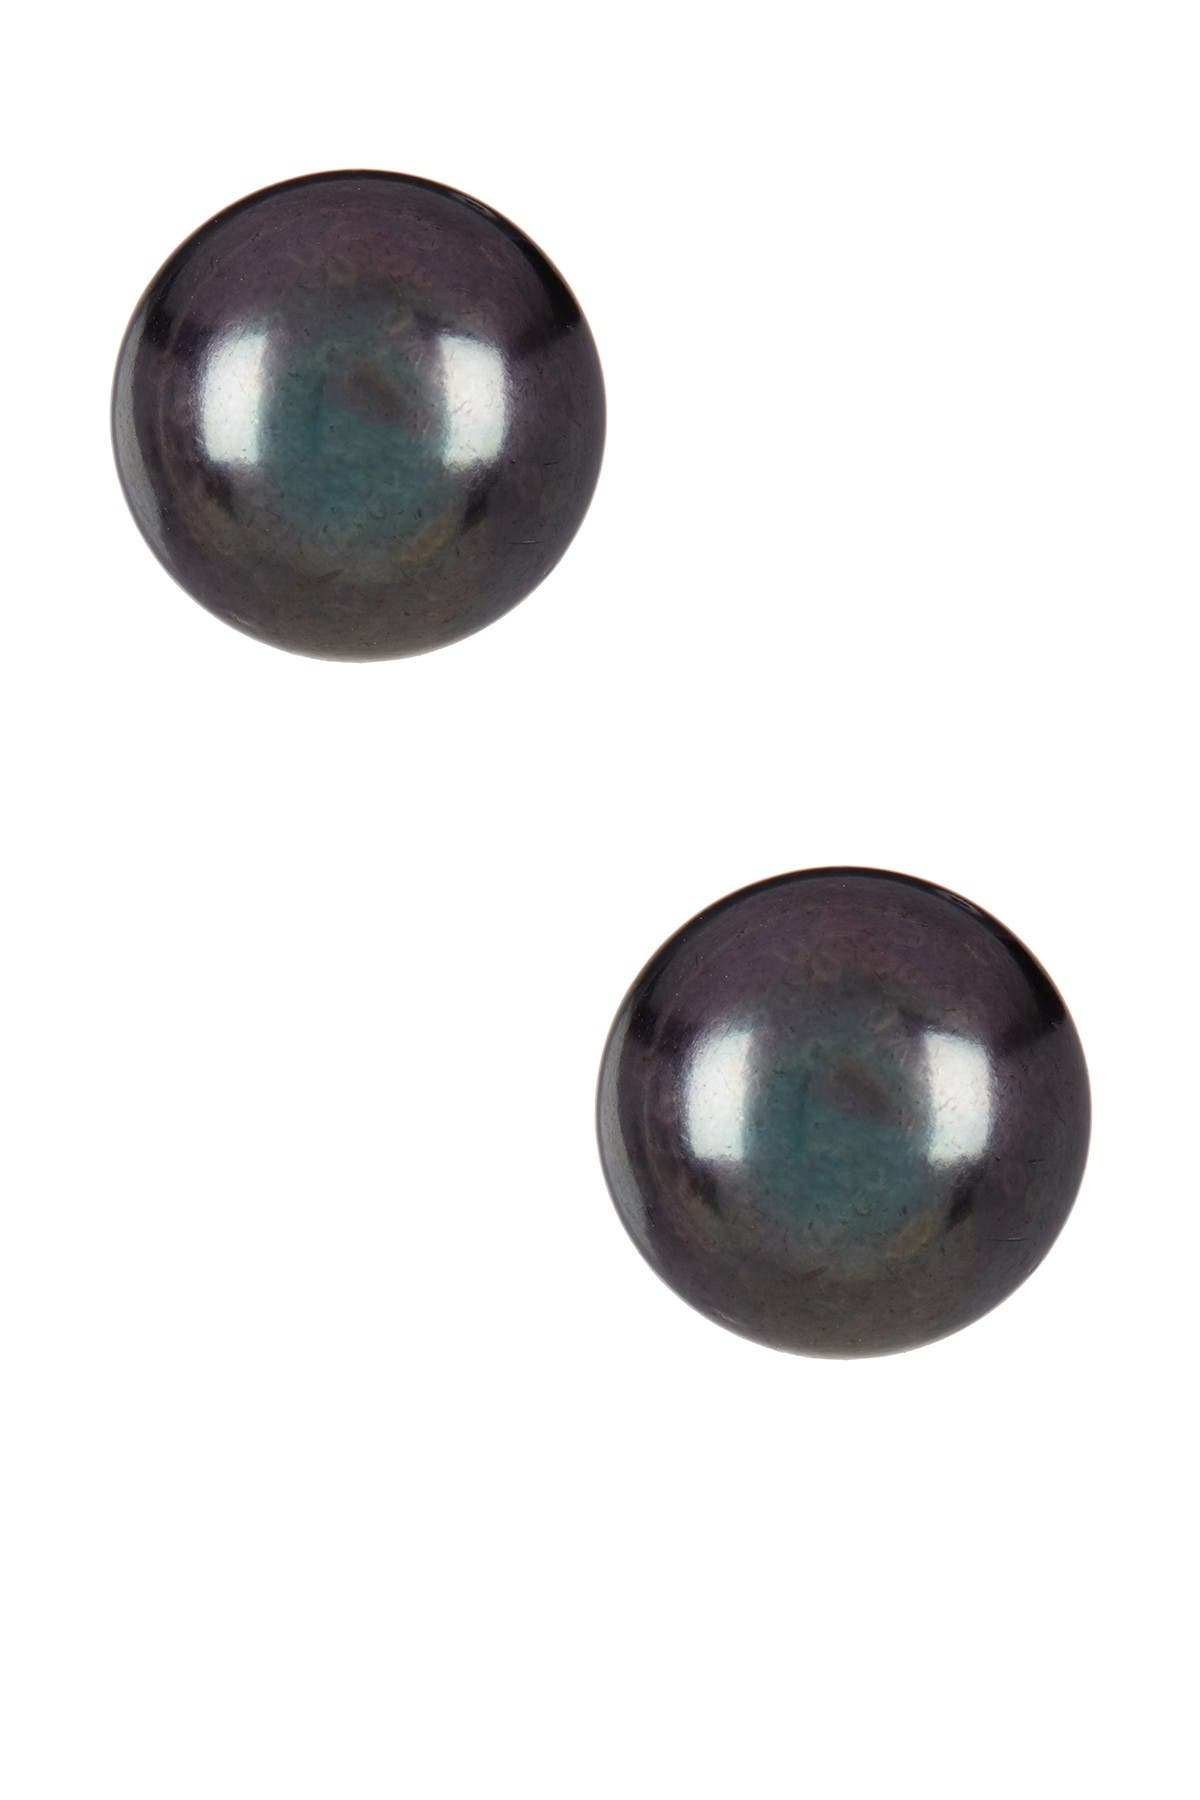 Image of Splendid Pearls 14K Yellow Gold 12-12.5mm Black Pearl Stud Earrings